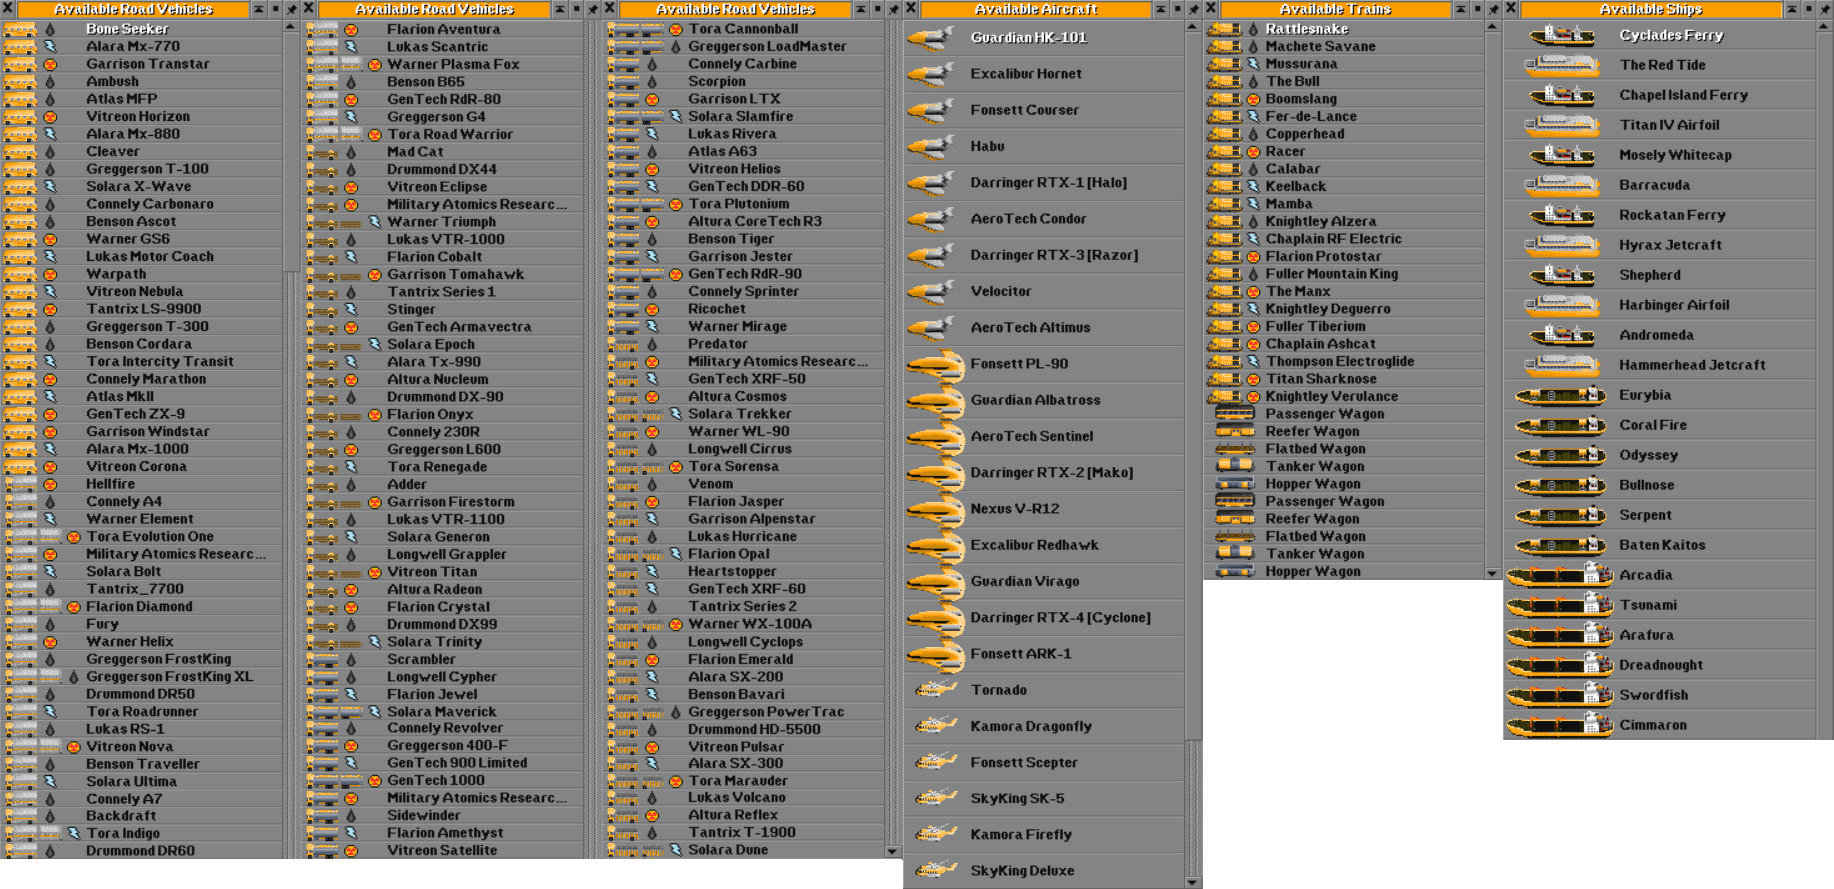 wasteland_vehicle_list_0.3.0.png